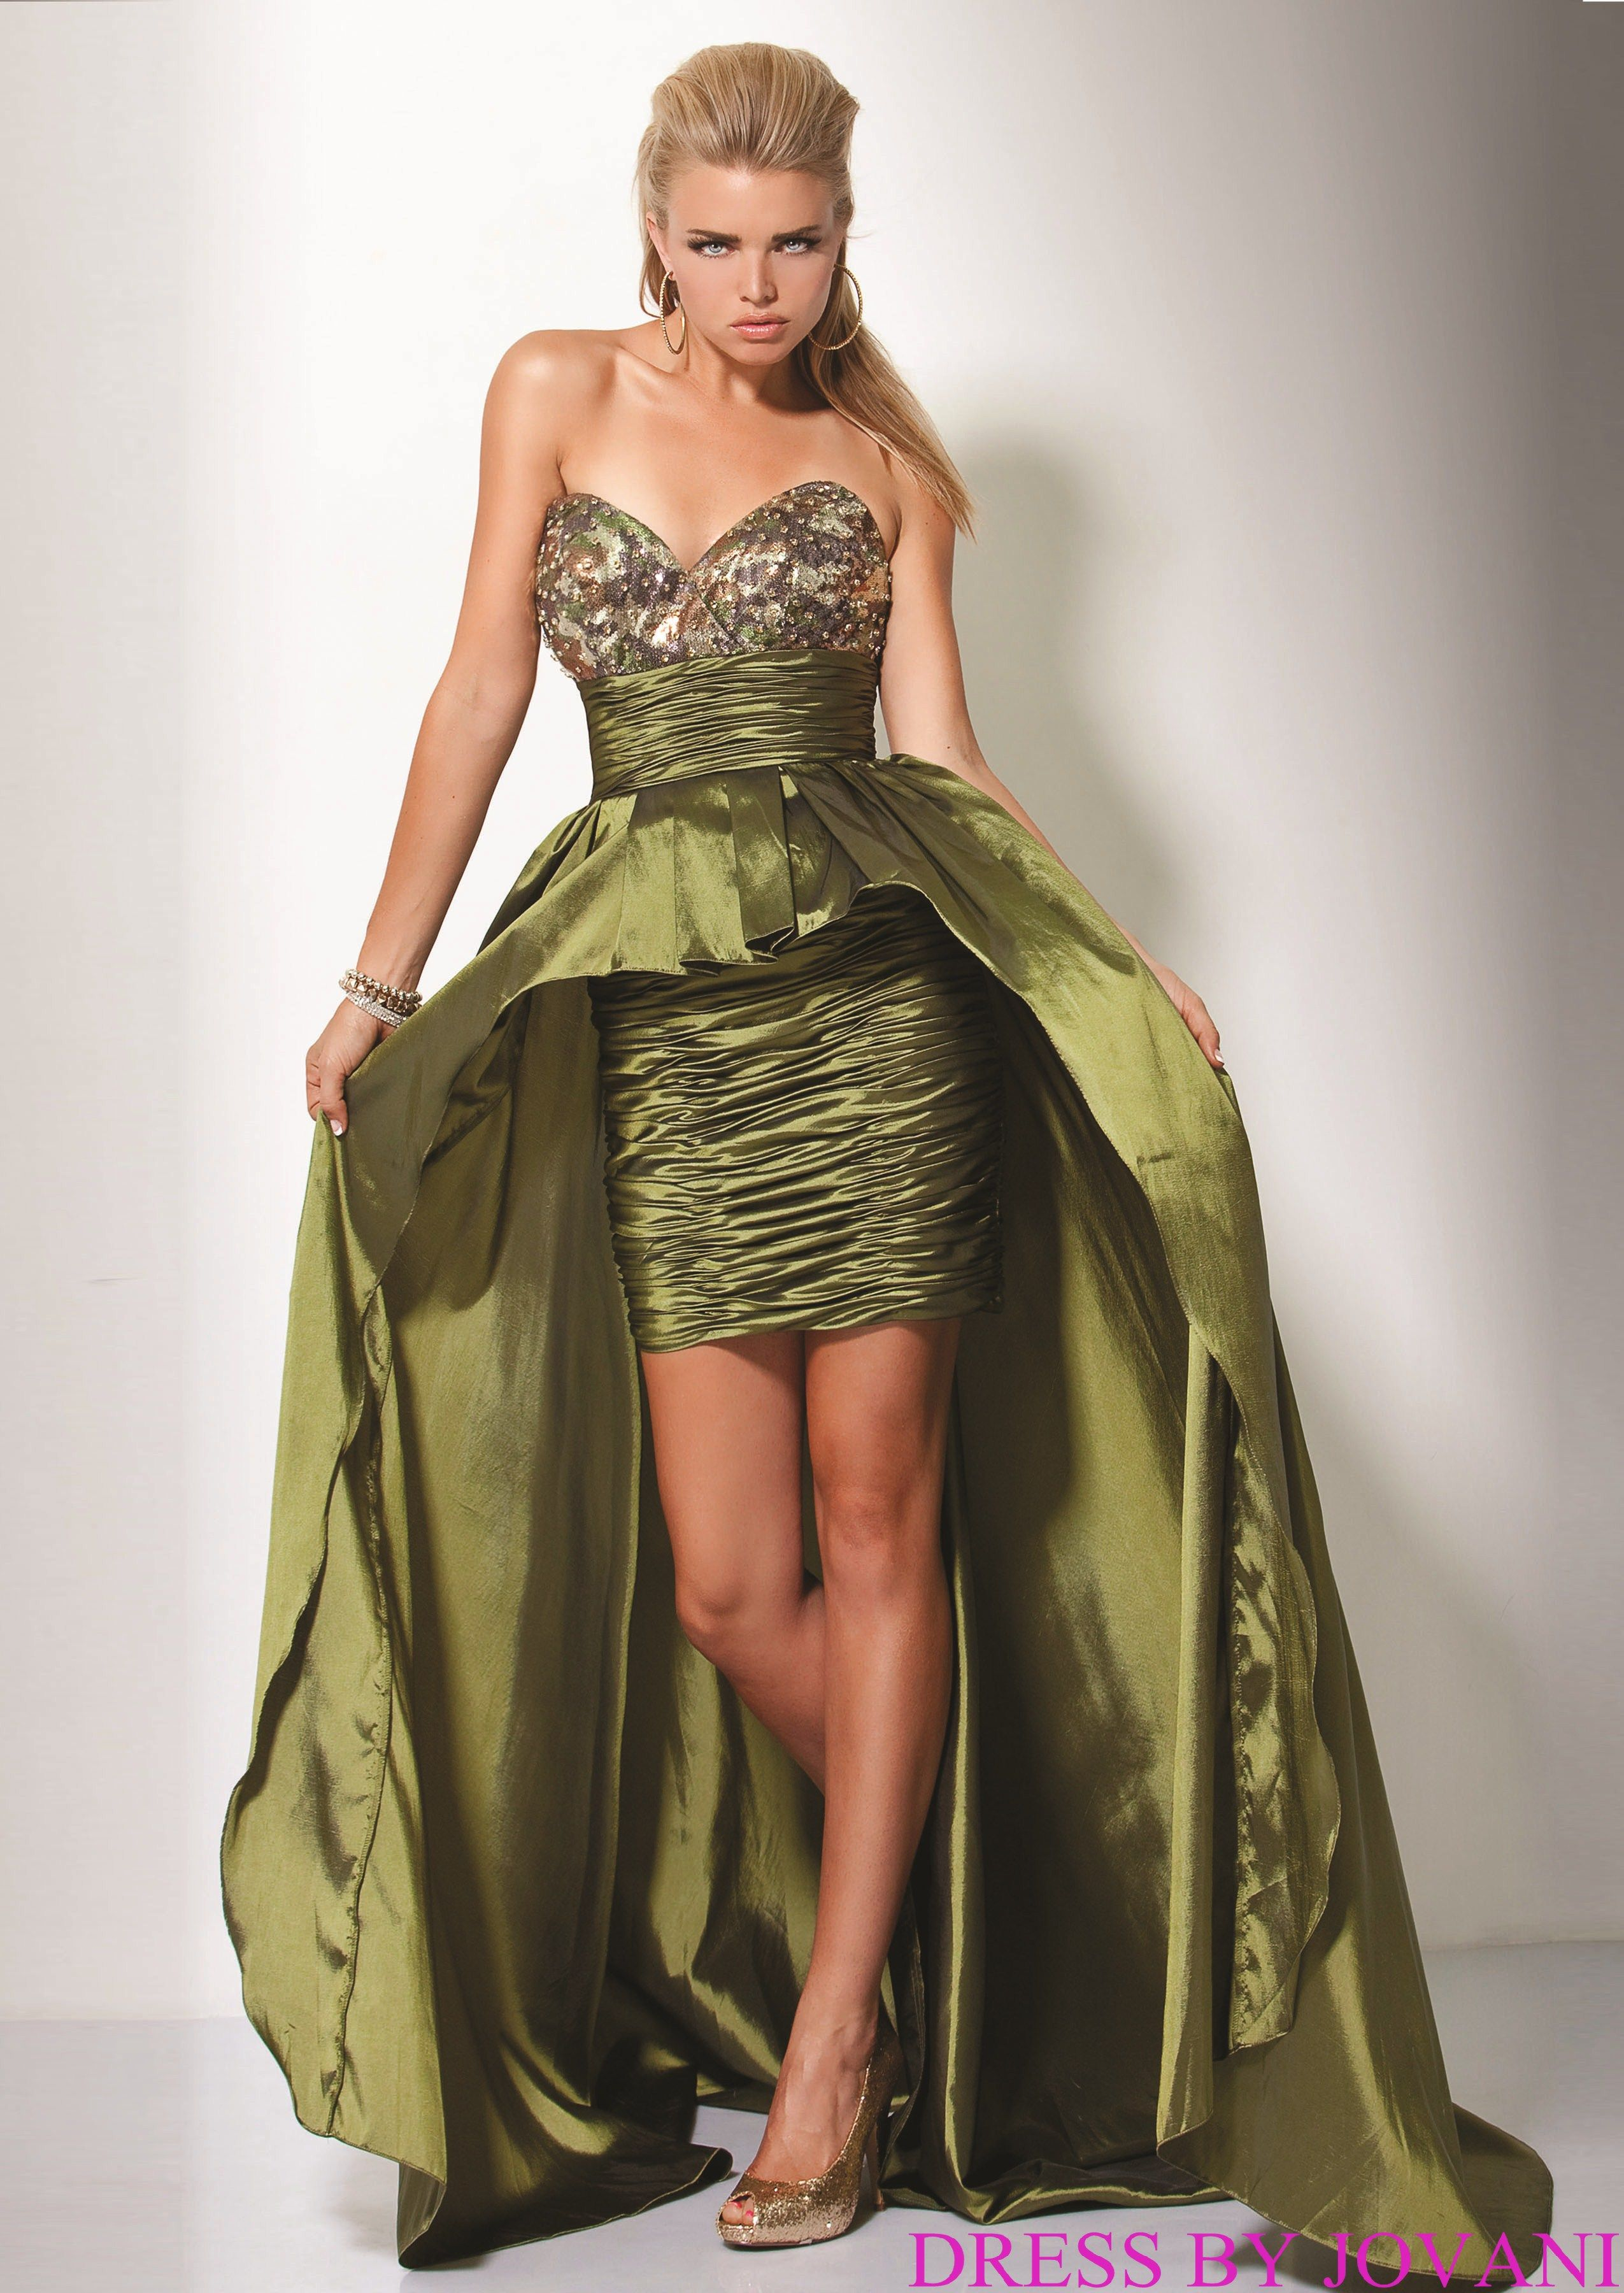 d9d43a4f419a0 Camo Formal Dresses for Sale | Camouflage sequin bodice Prom Dress by  Jovani | Shop Runway Dresses